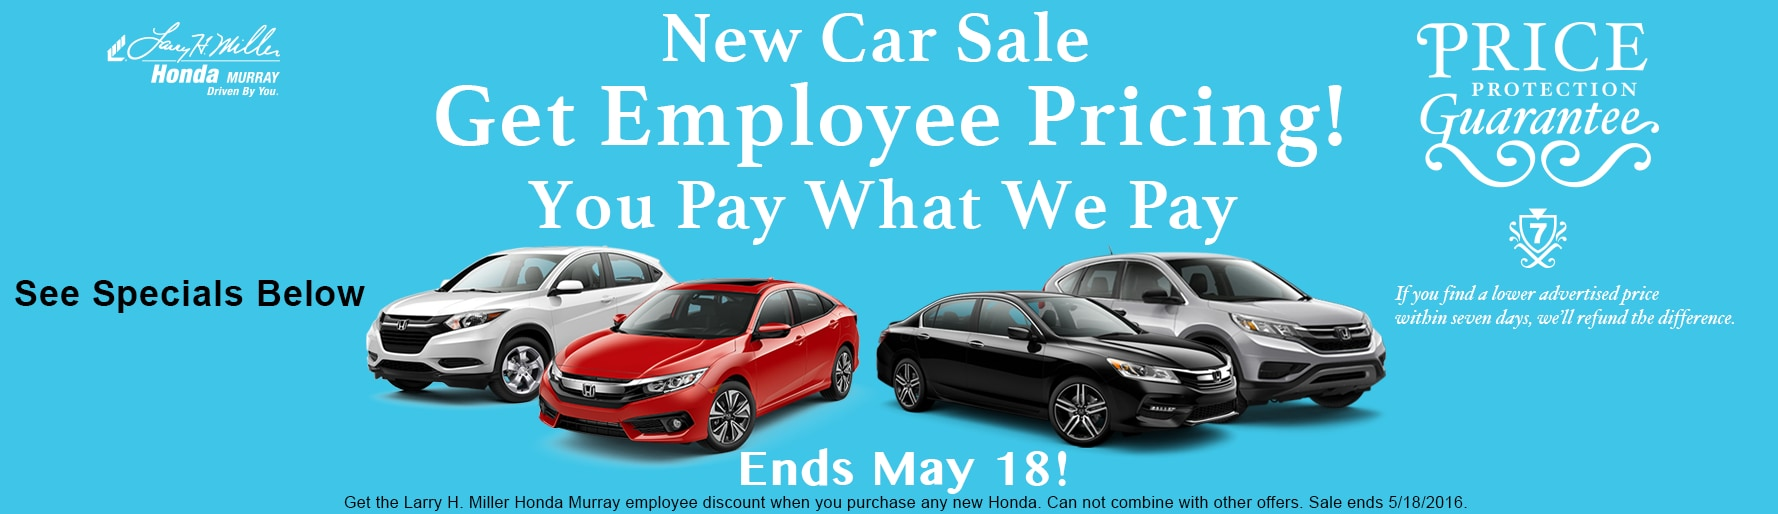 What Is Employee Pricing On Cars Cars Image 2018